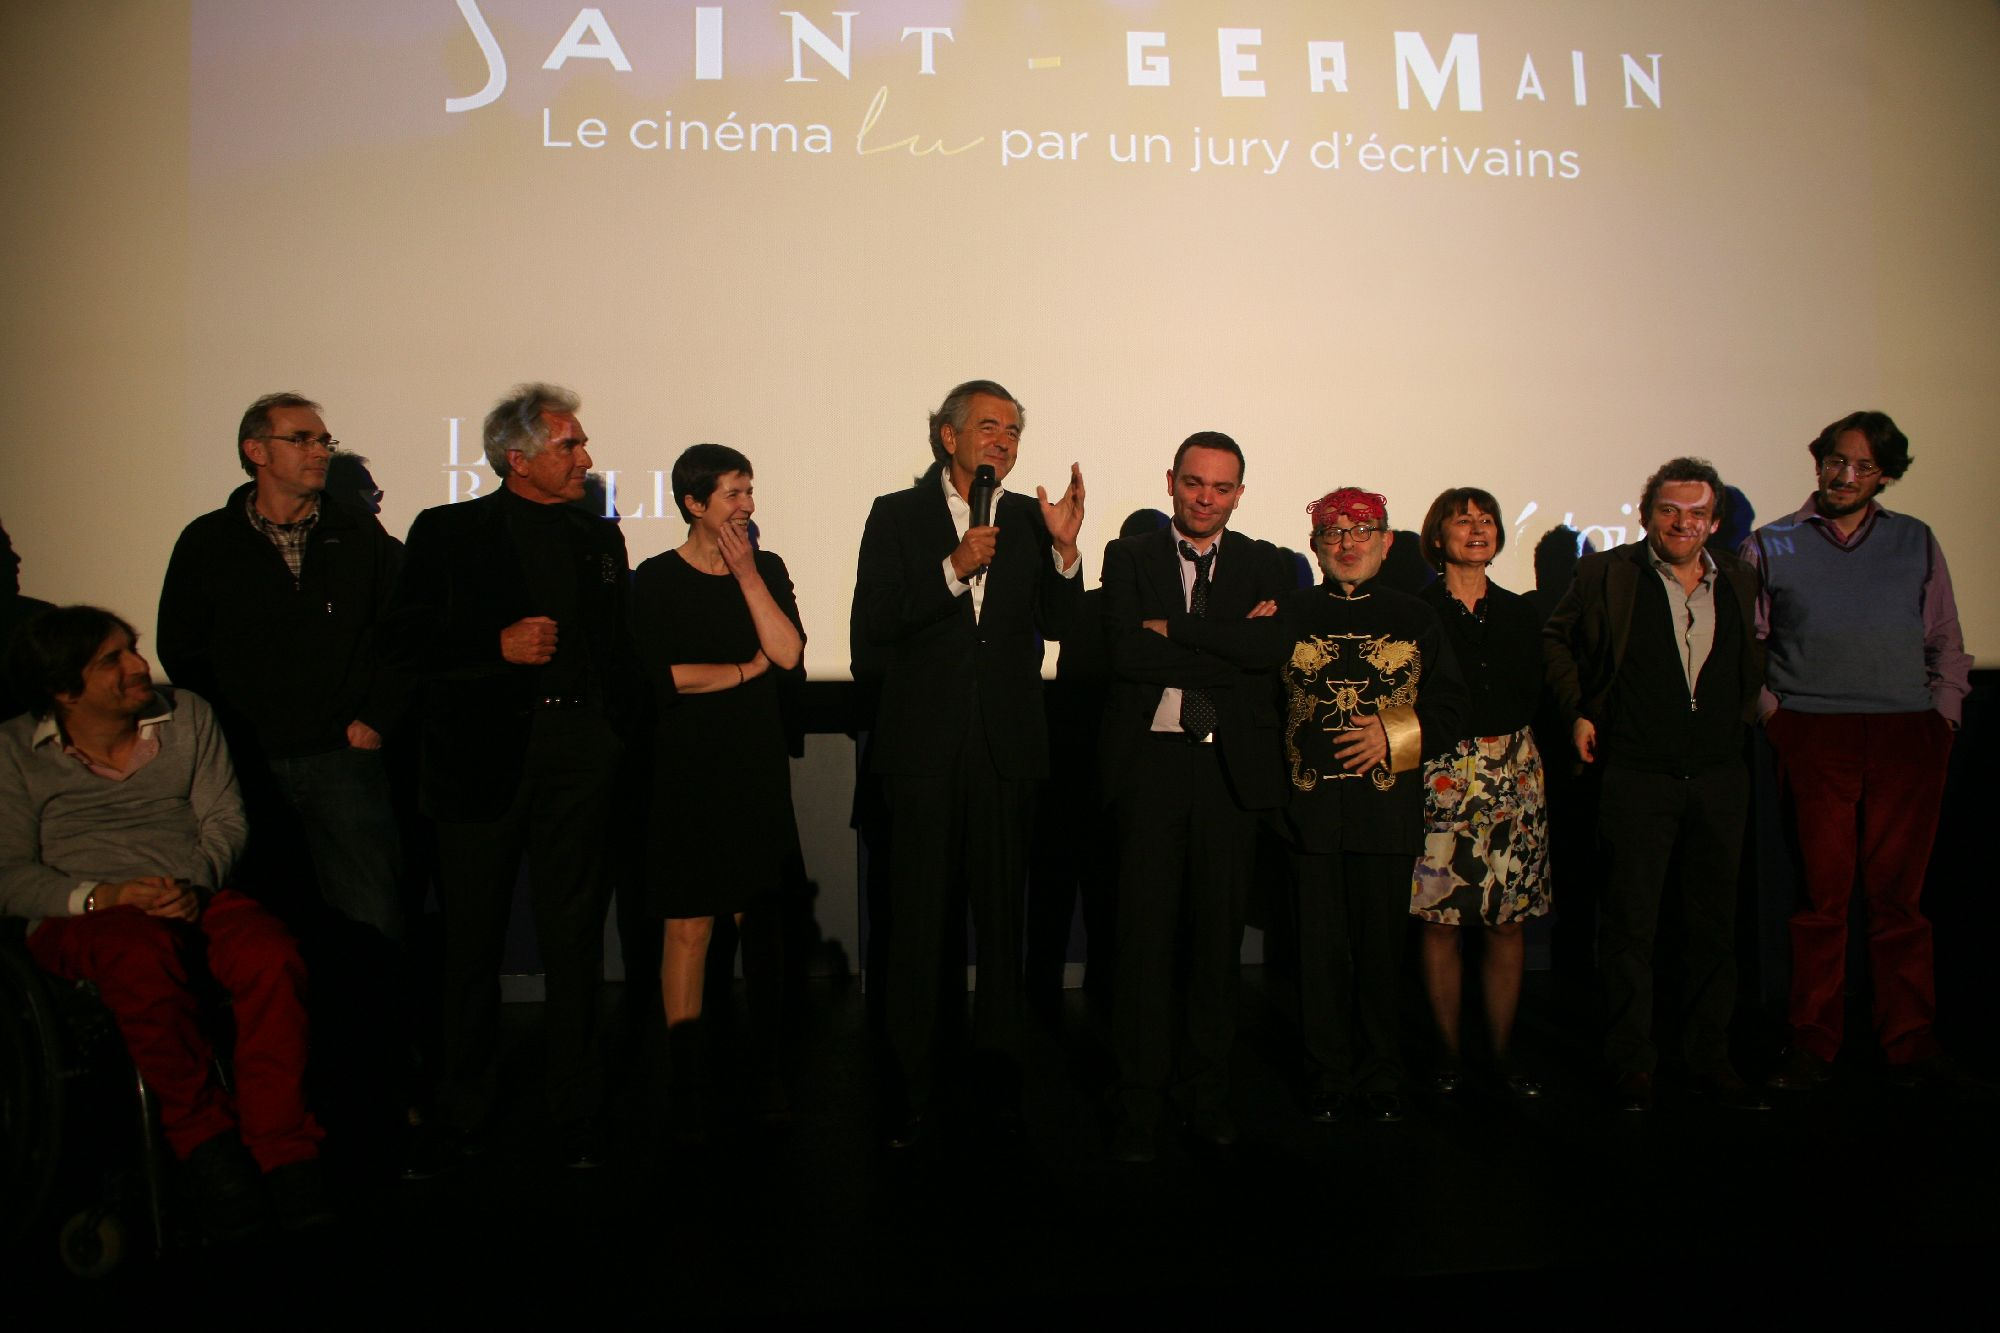 prix-Saint-Germain